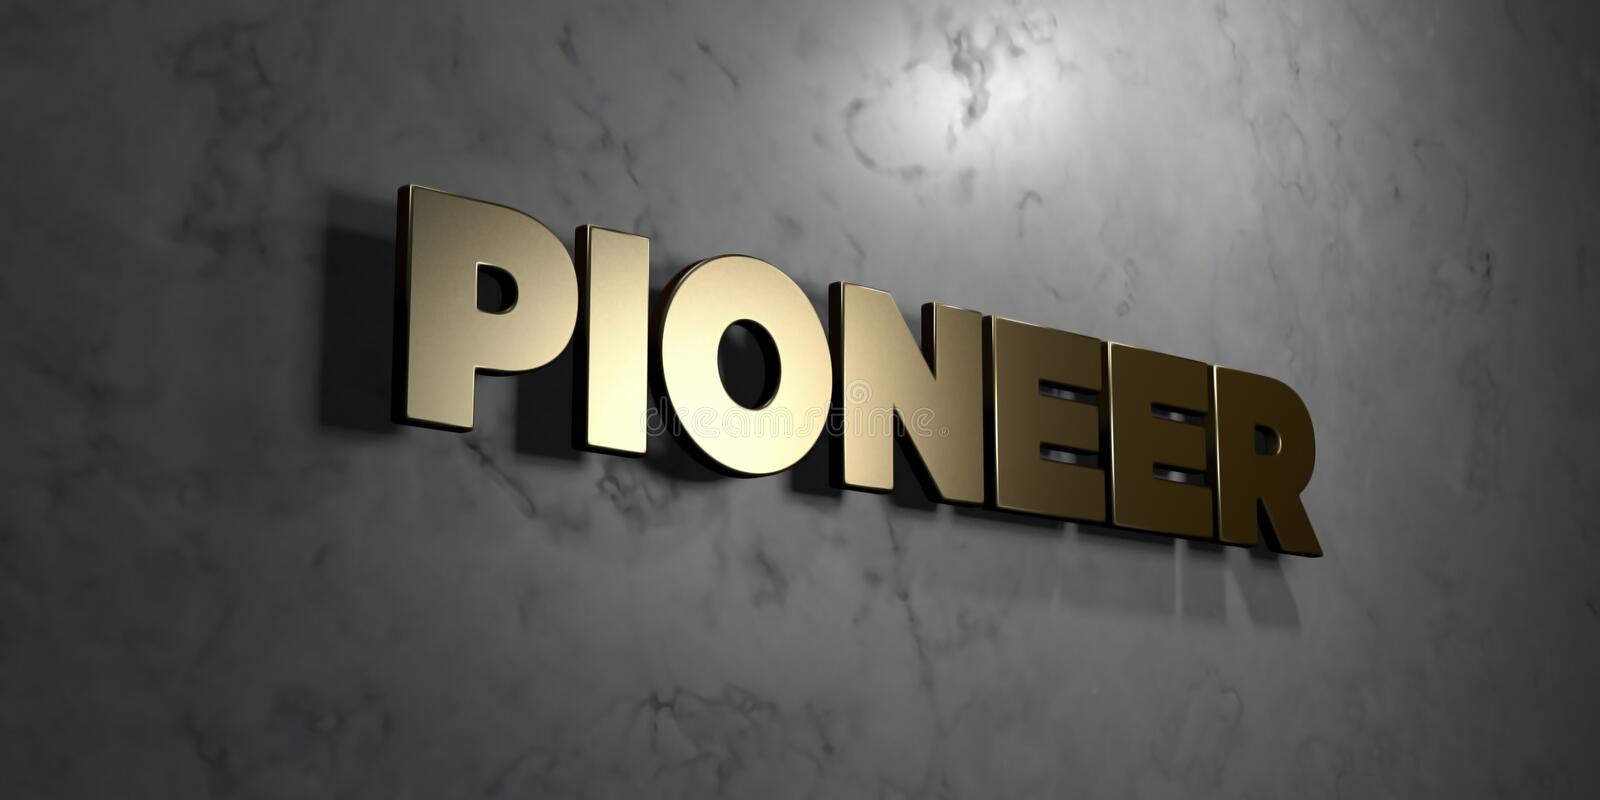 Pioneer - Gold sign mounted on glossy marble wall - 3D rendered royalty free stock illustration vector illustration